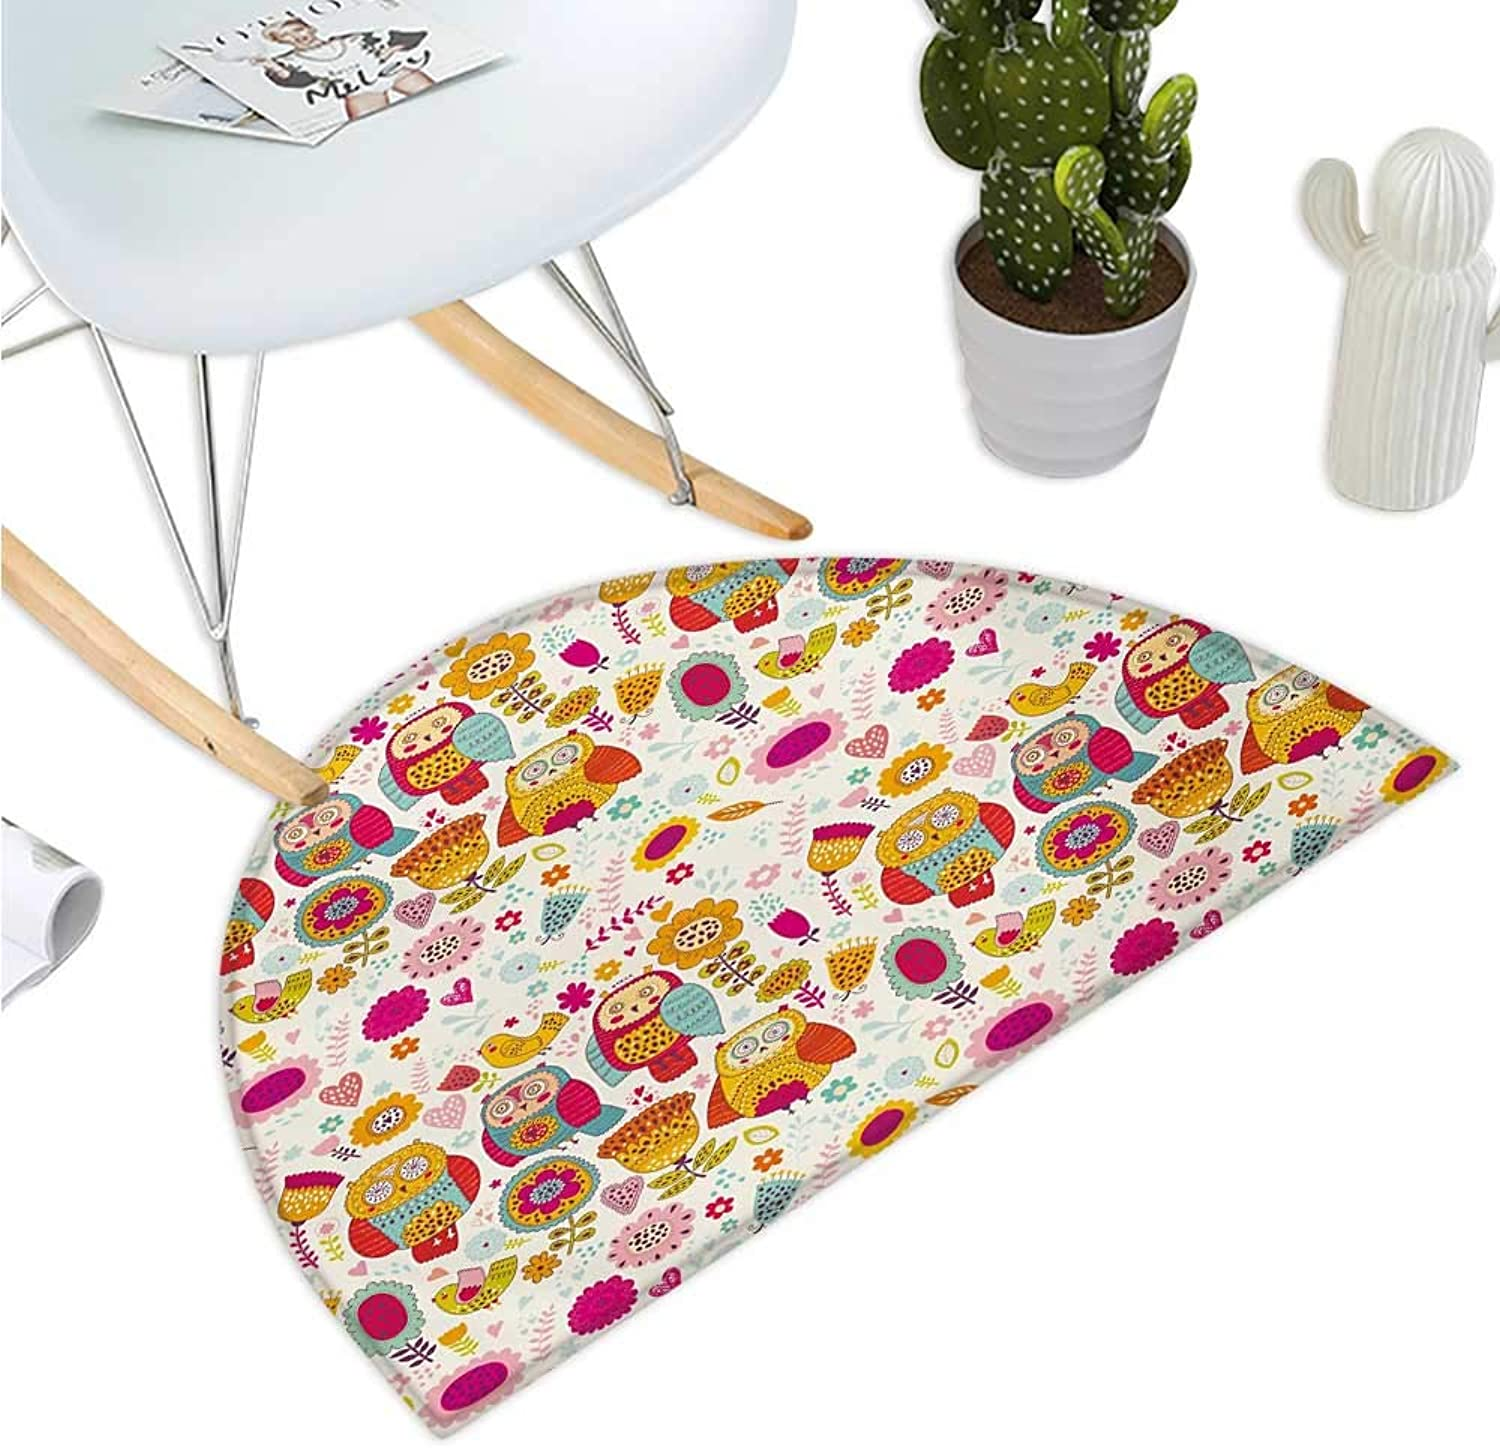 Owl Semicircular Cushion Sixties Inspired color Scheme Psychedelic Abstract Birds and Flowers Multicolord Image Entry Door Mat H 47.2  xD 70.8  Multicolor